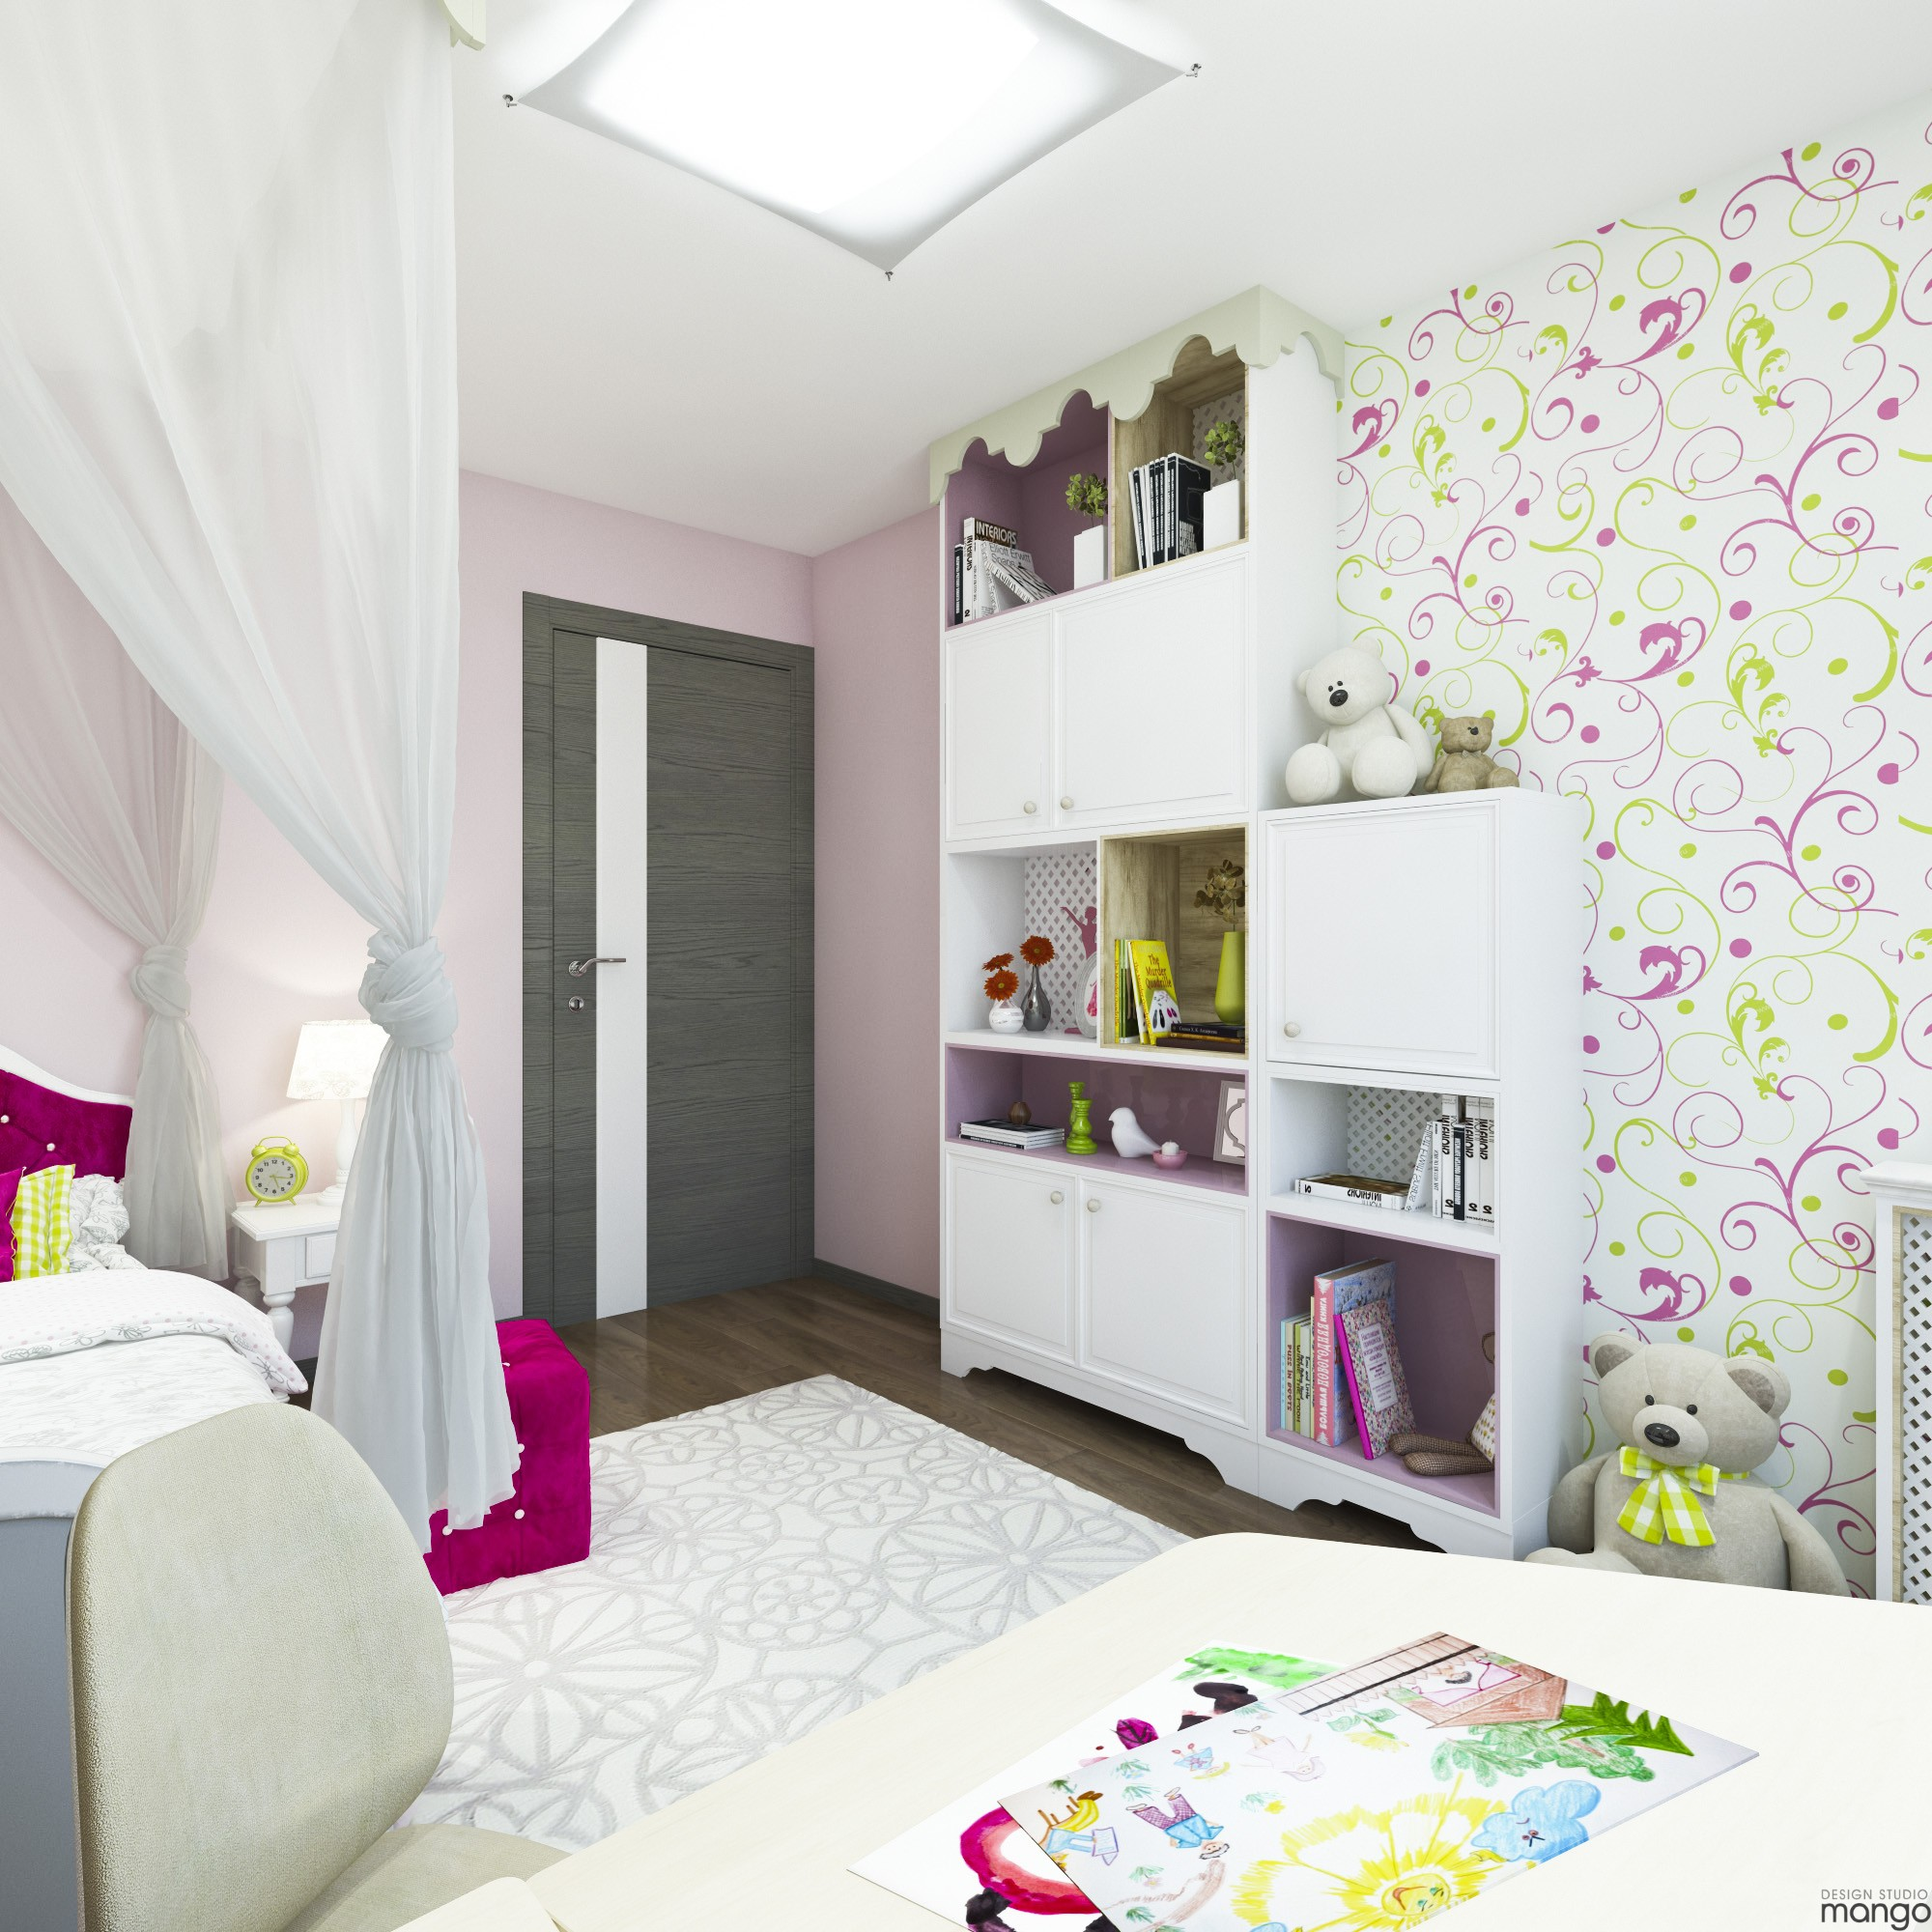 Decorating With Colors Mango: Variety Of Kids Room Decorating Ideas Which Apply With A